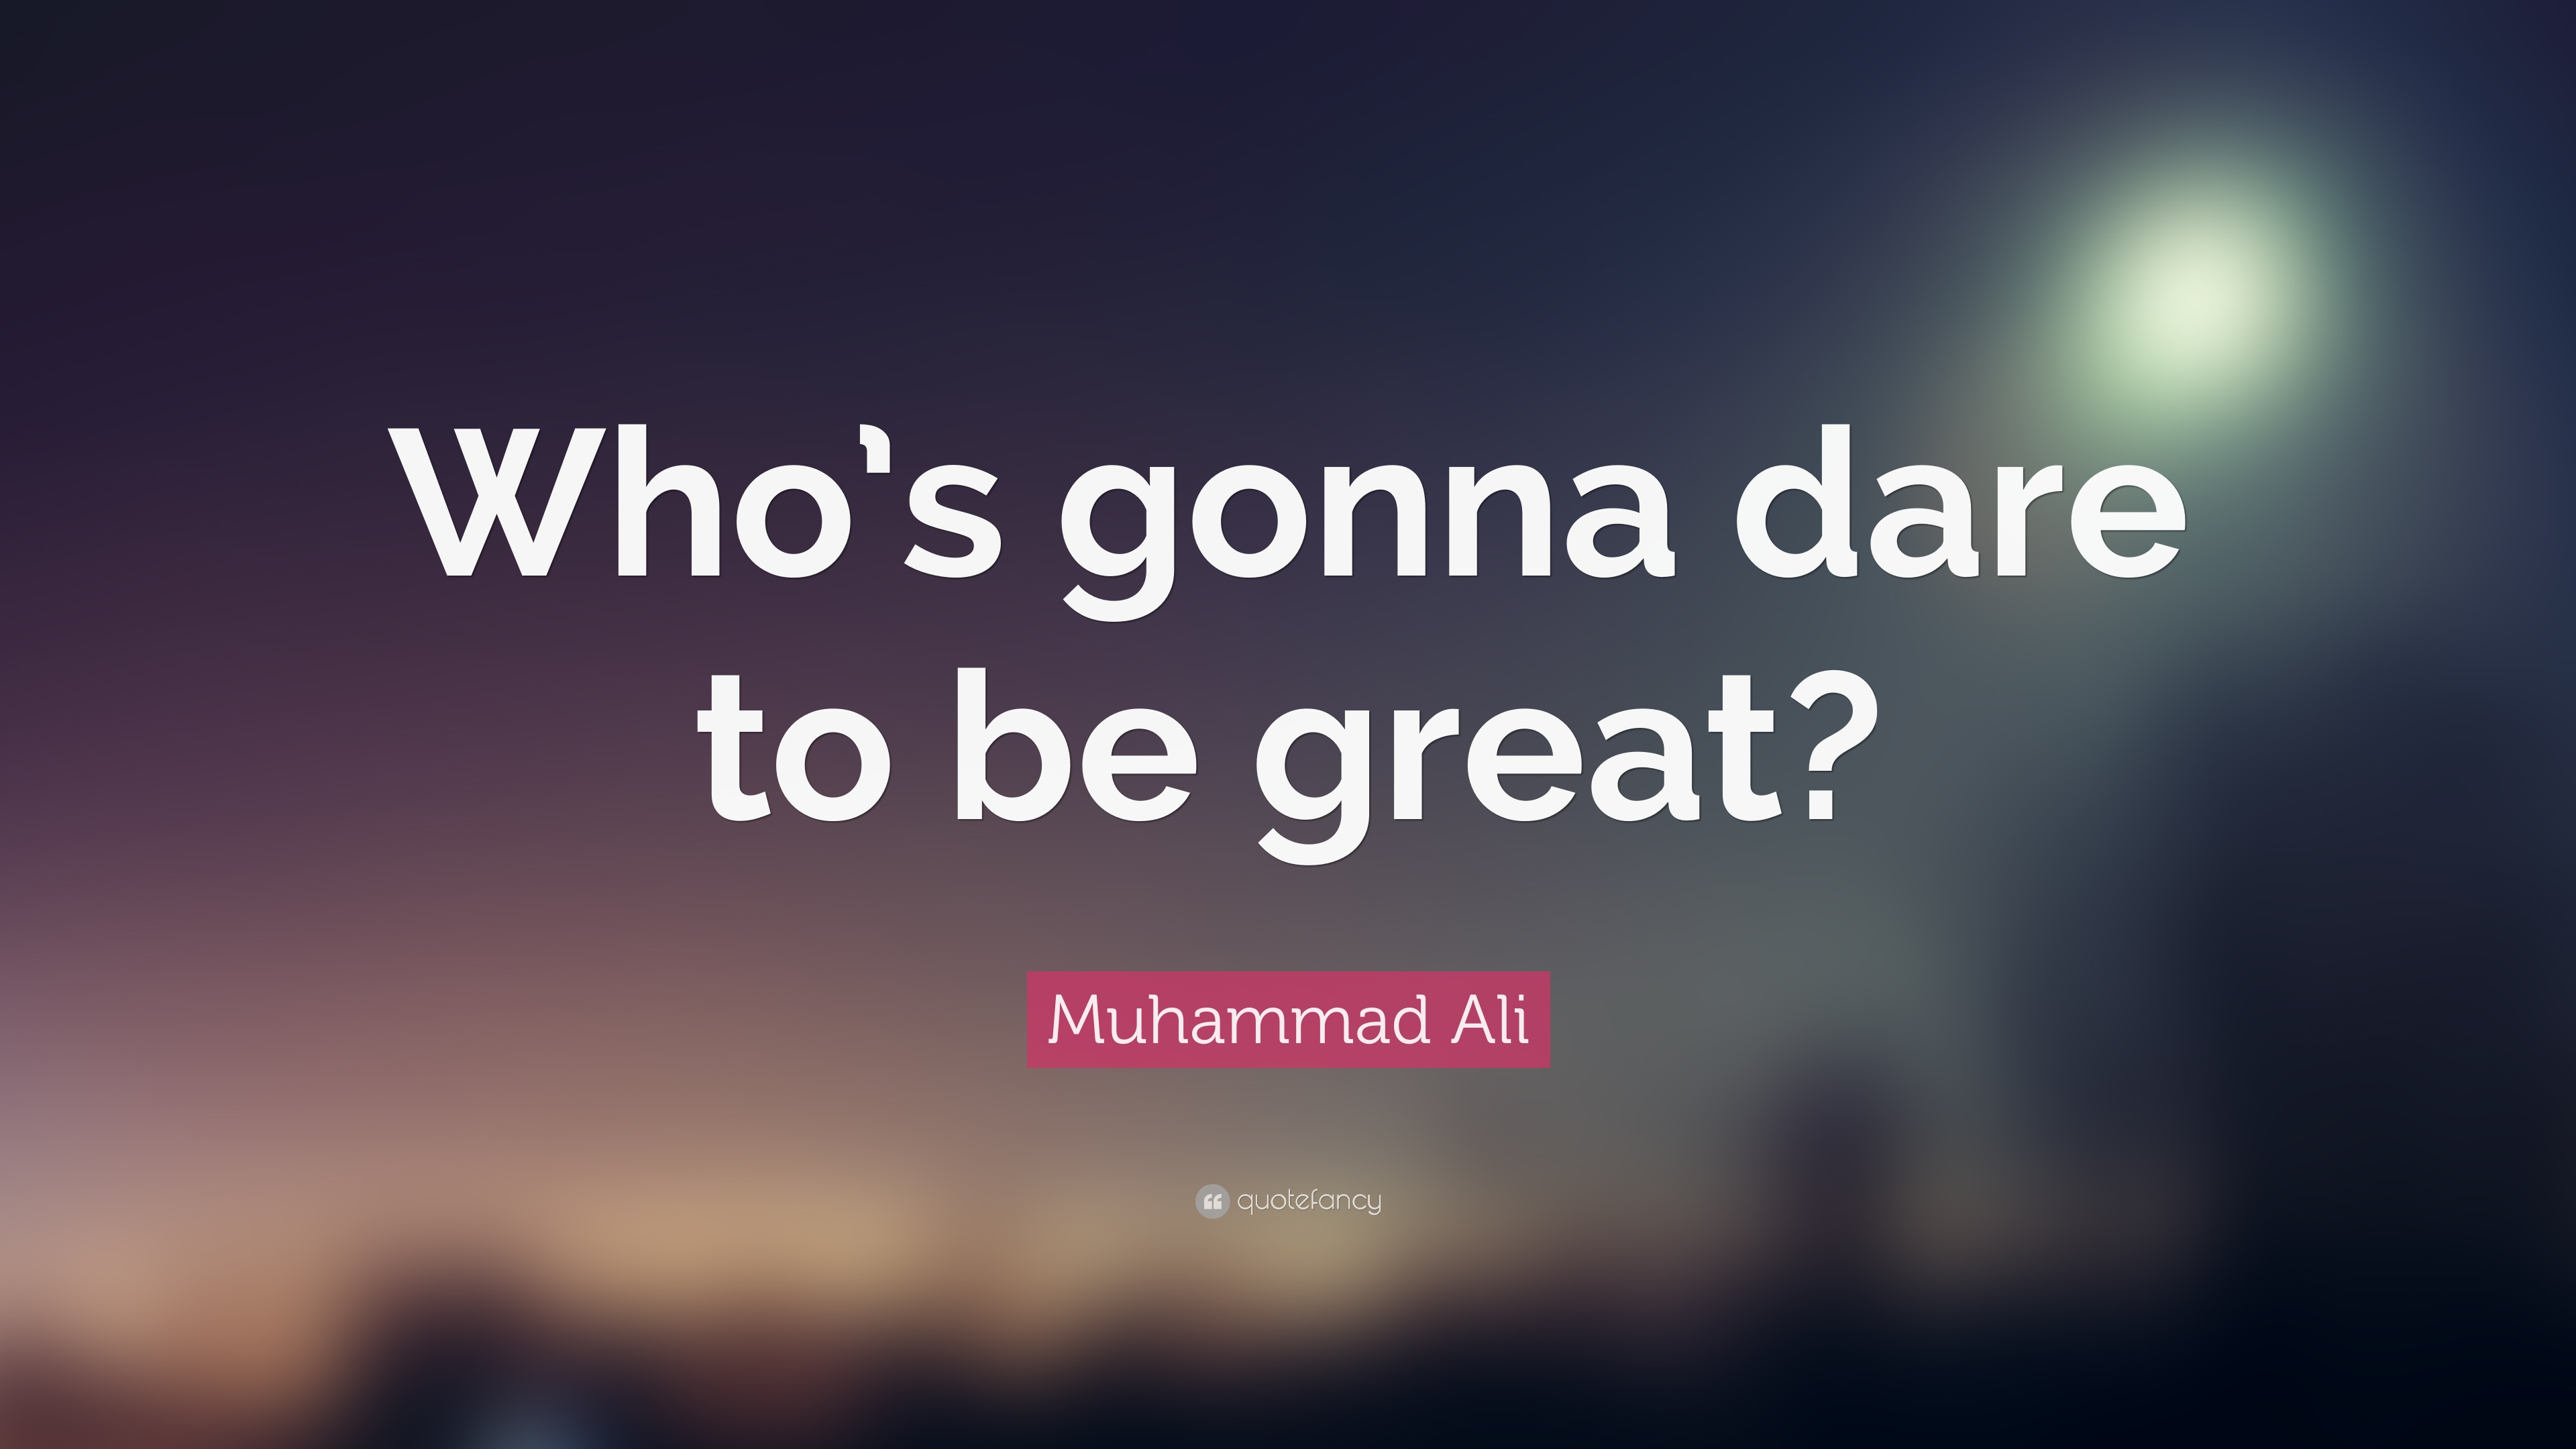 muhammad ali quotes  100 wallpapers